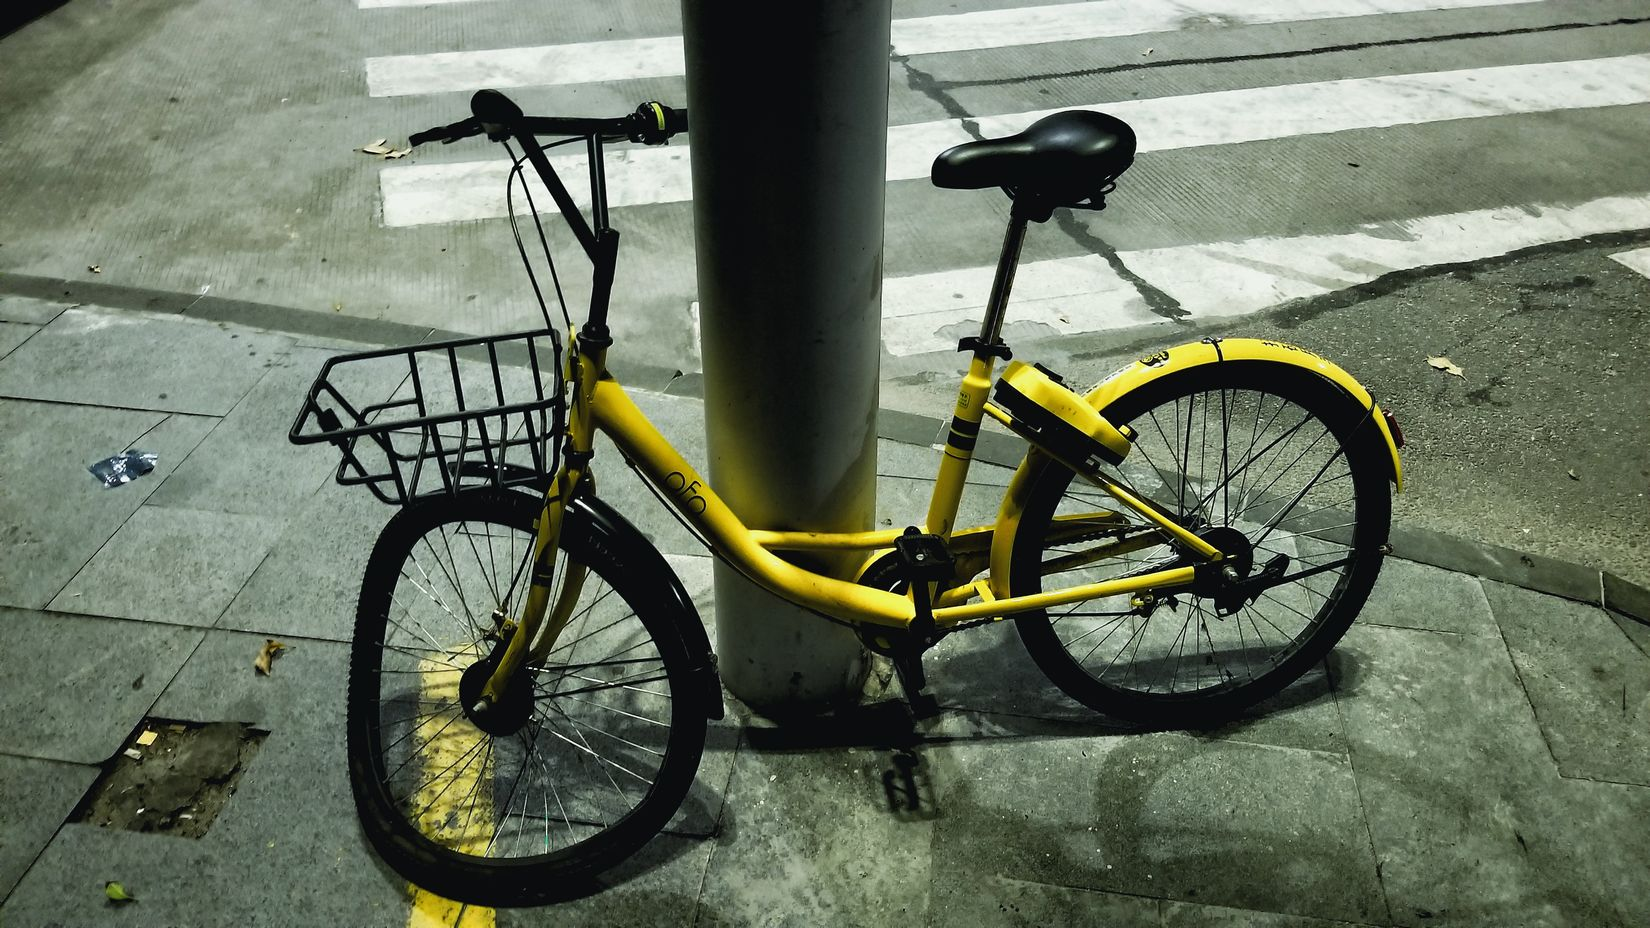 Bicycle Transportation Mode Of Transport Day No People Outdoors Stationary Land Vehicle Close-up Share Bikes Yellow 寂しい